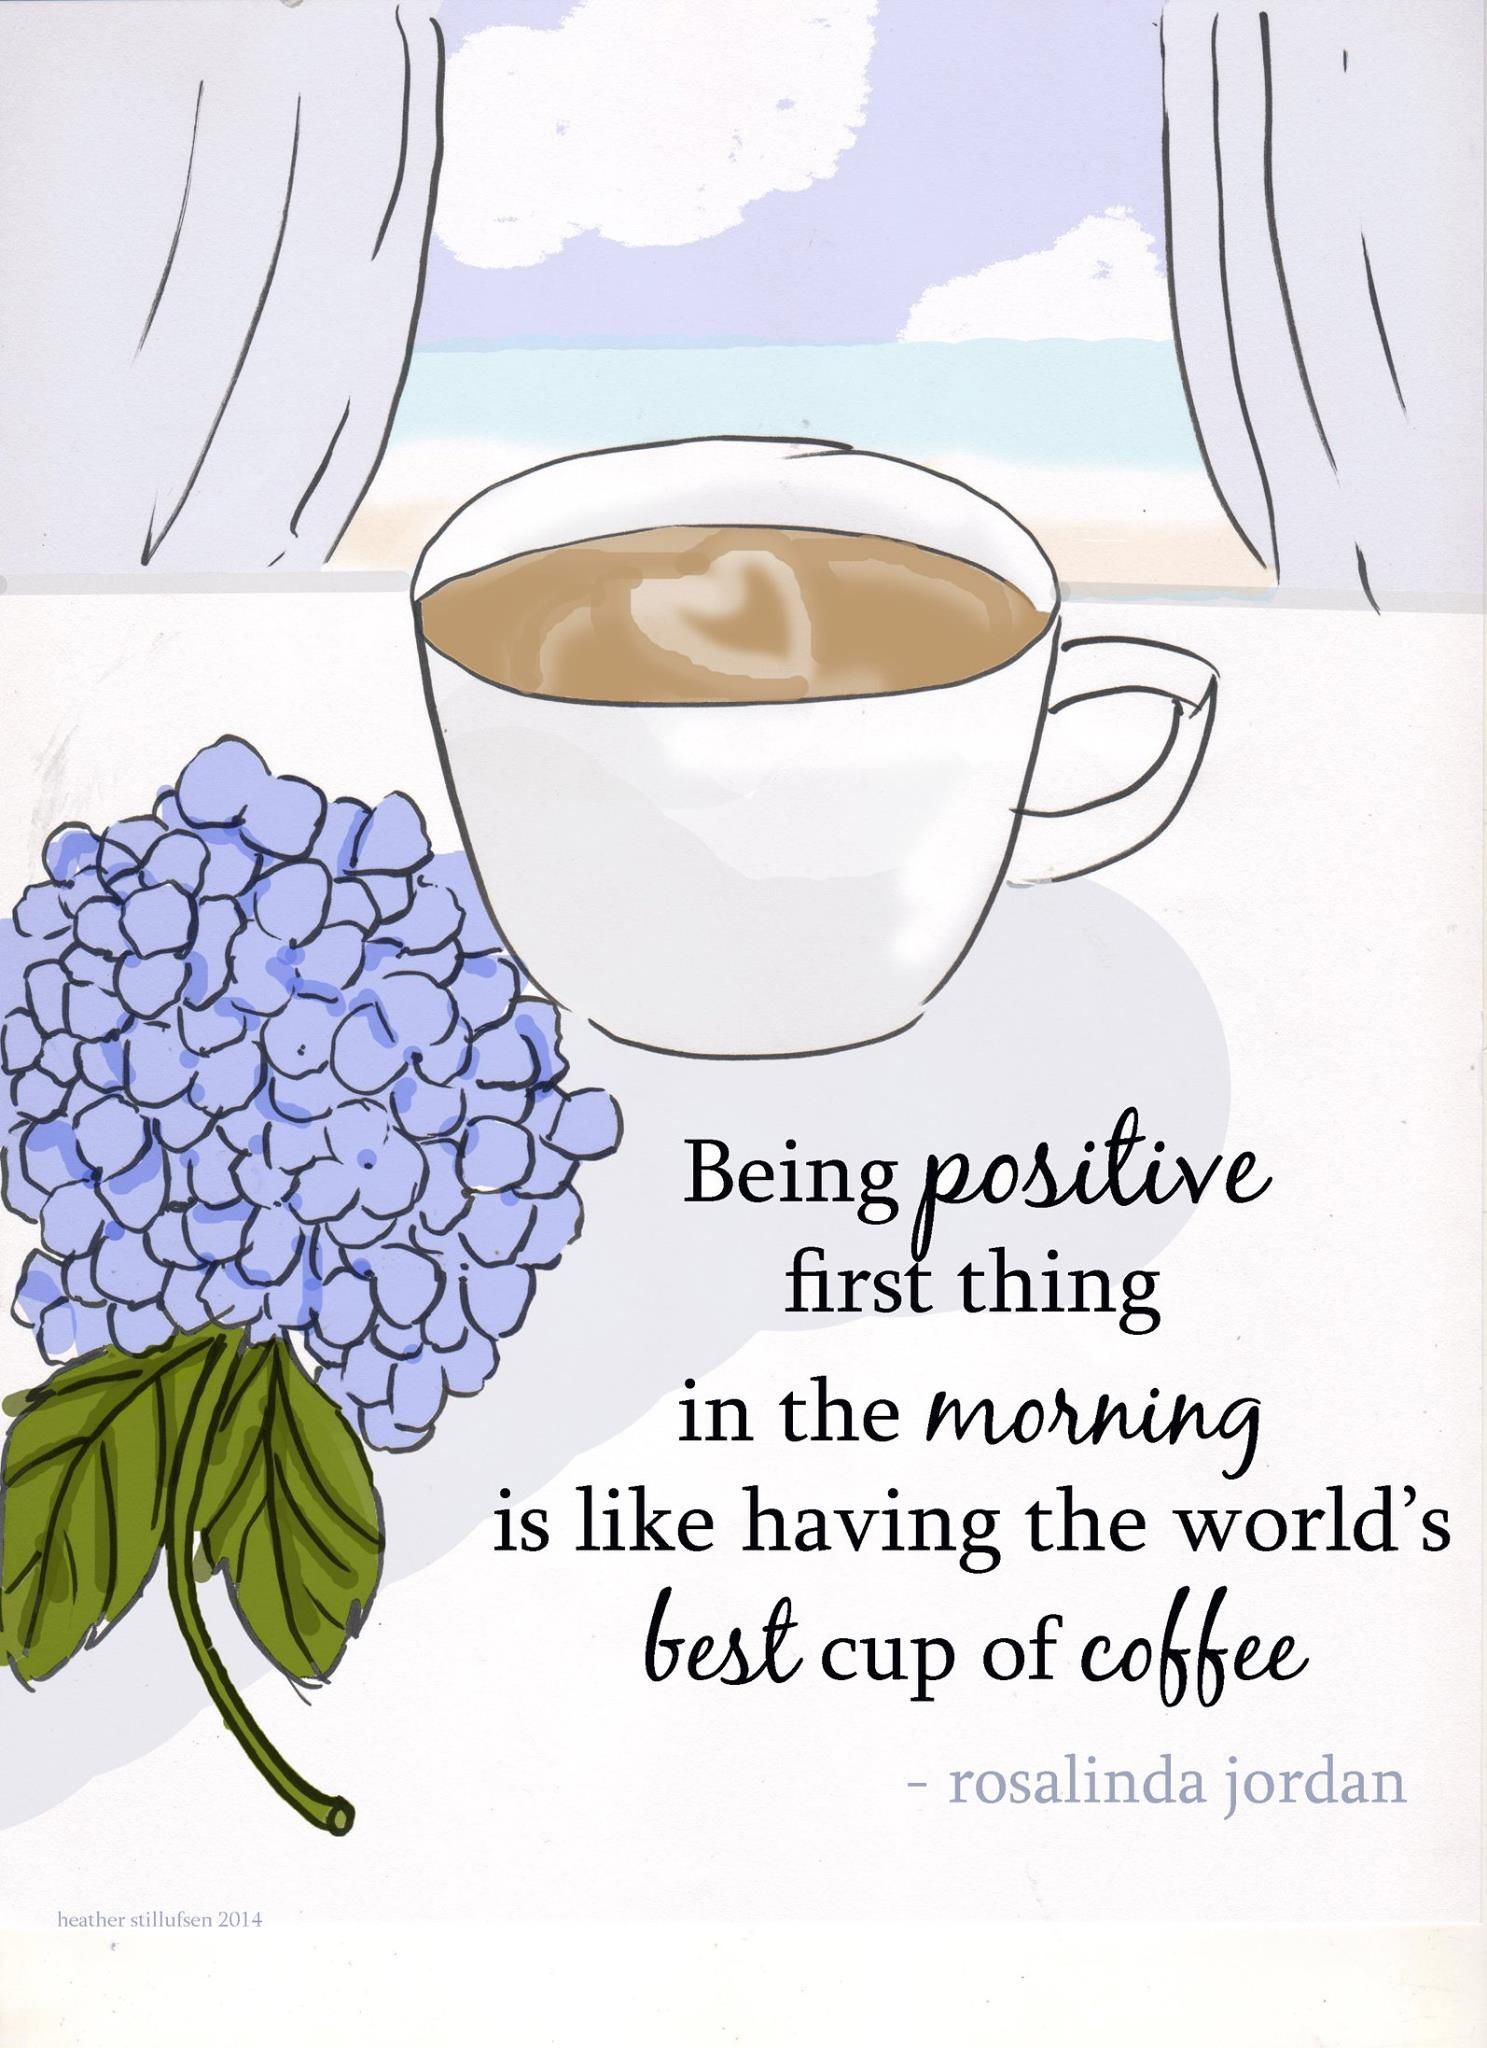 Being POSITIVE first thing in the morning is like having the world's best cup of coffee.